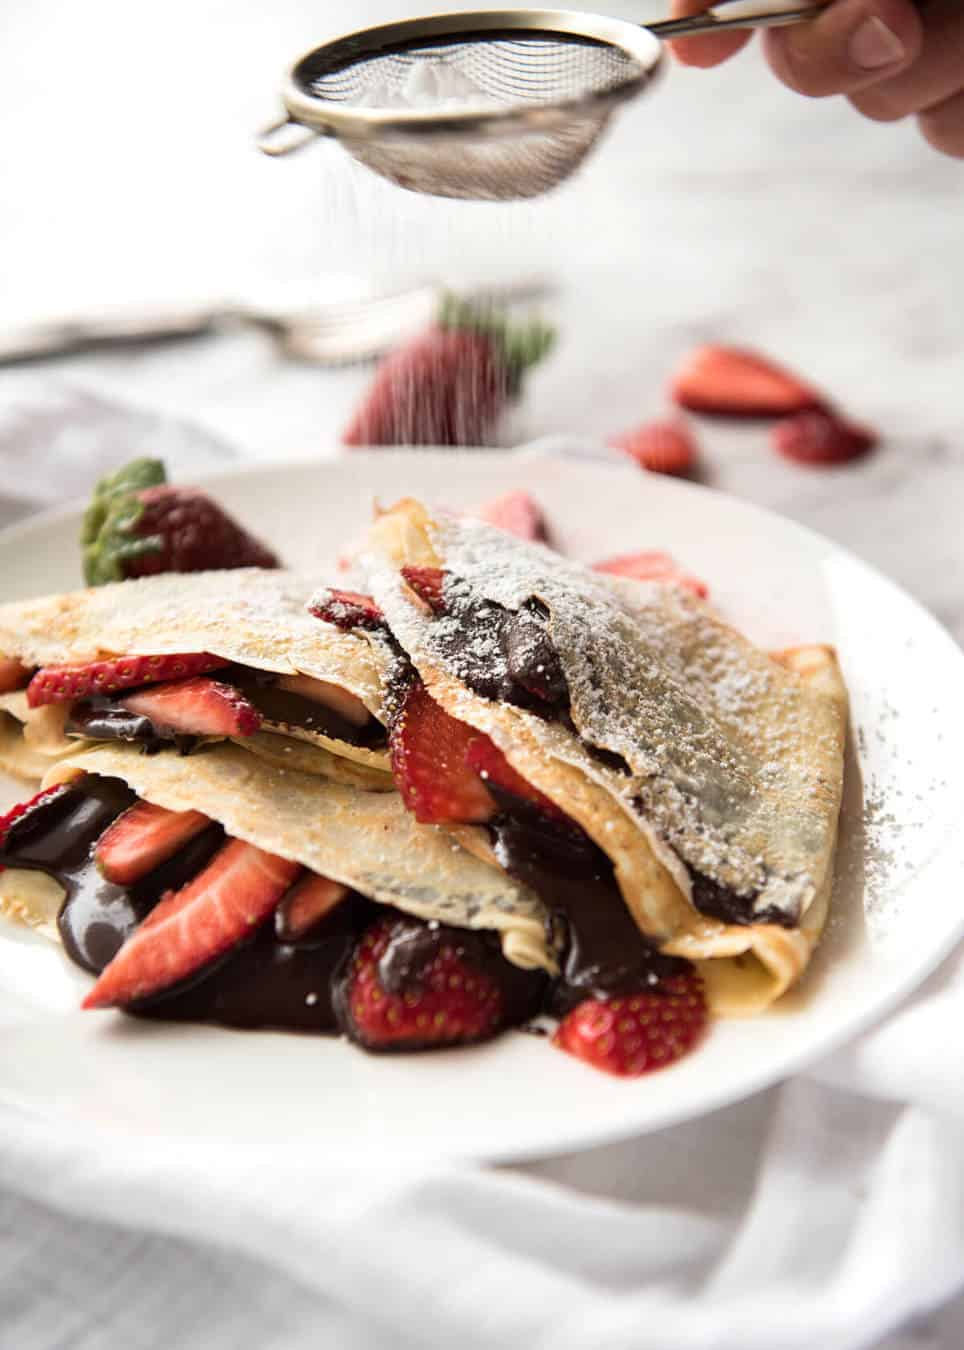 Nutella Crepes with Strawberries - The batter is a 10 second job when ...